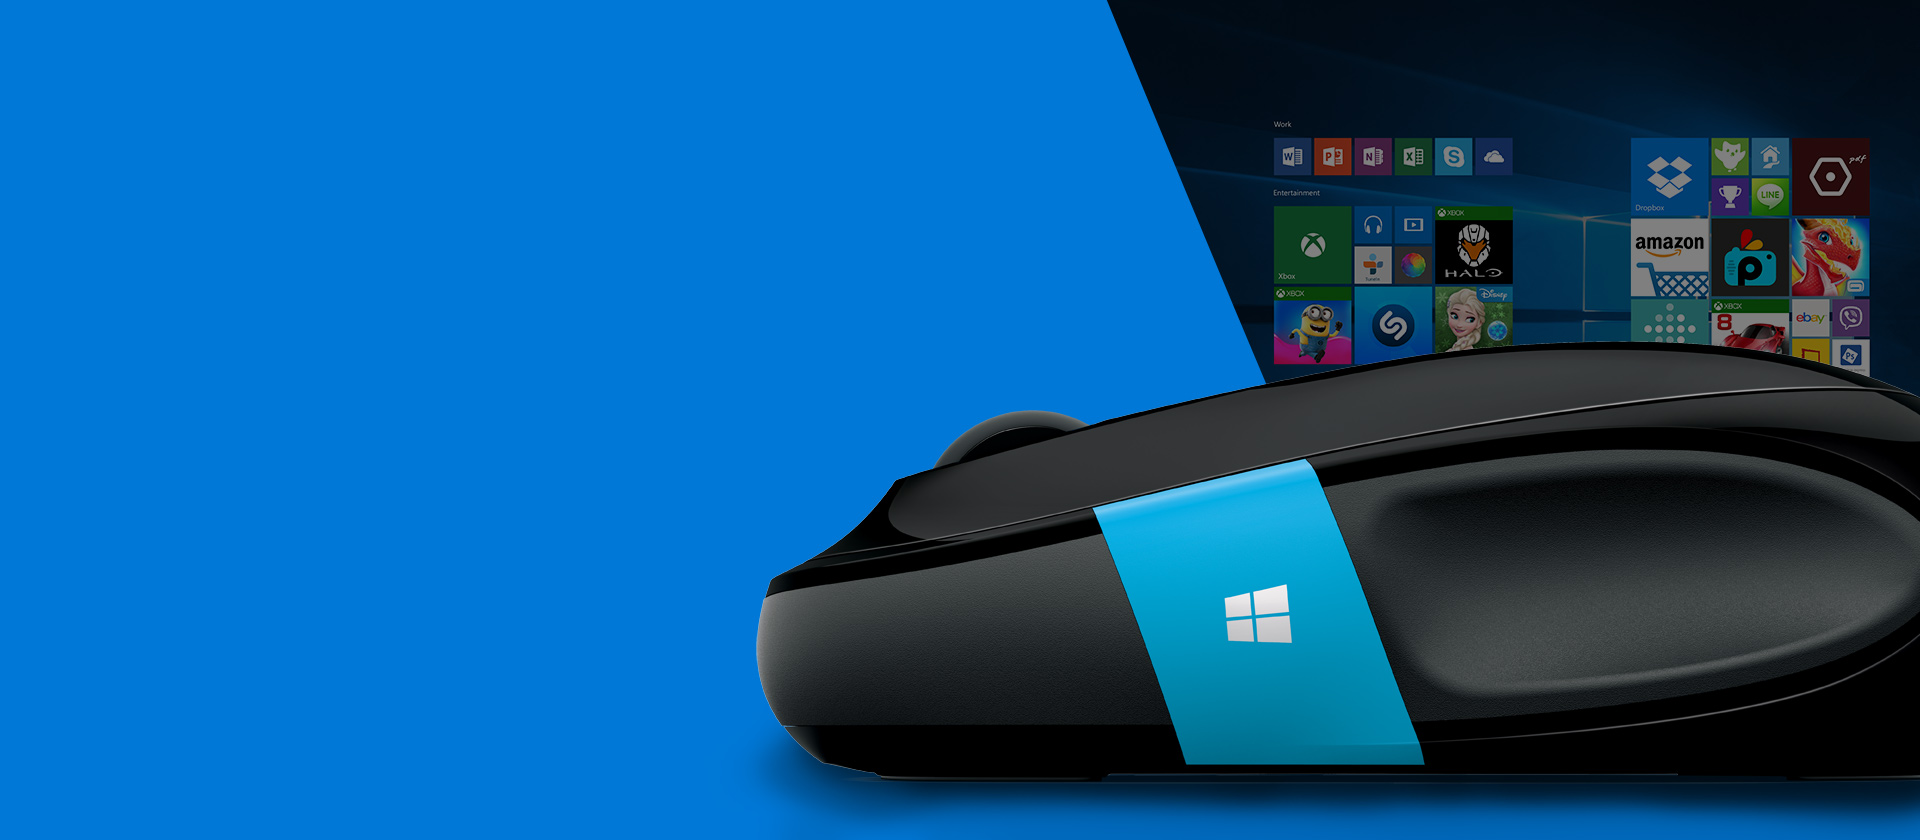 Promotional image of Microsoft mouse and apps